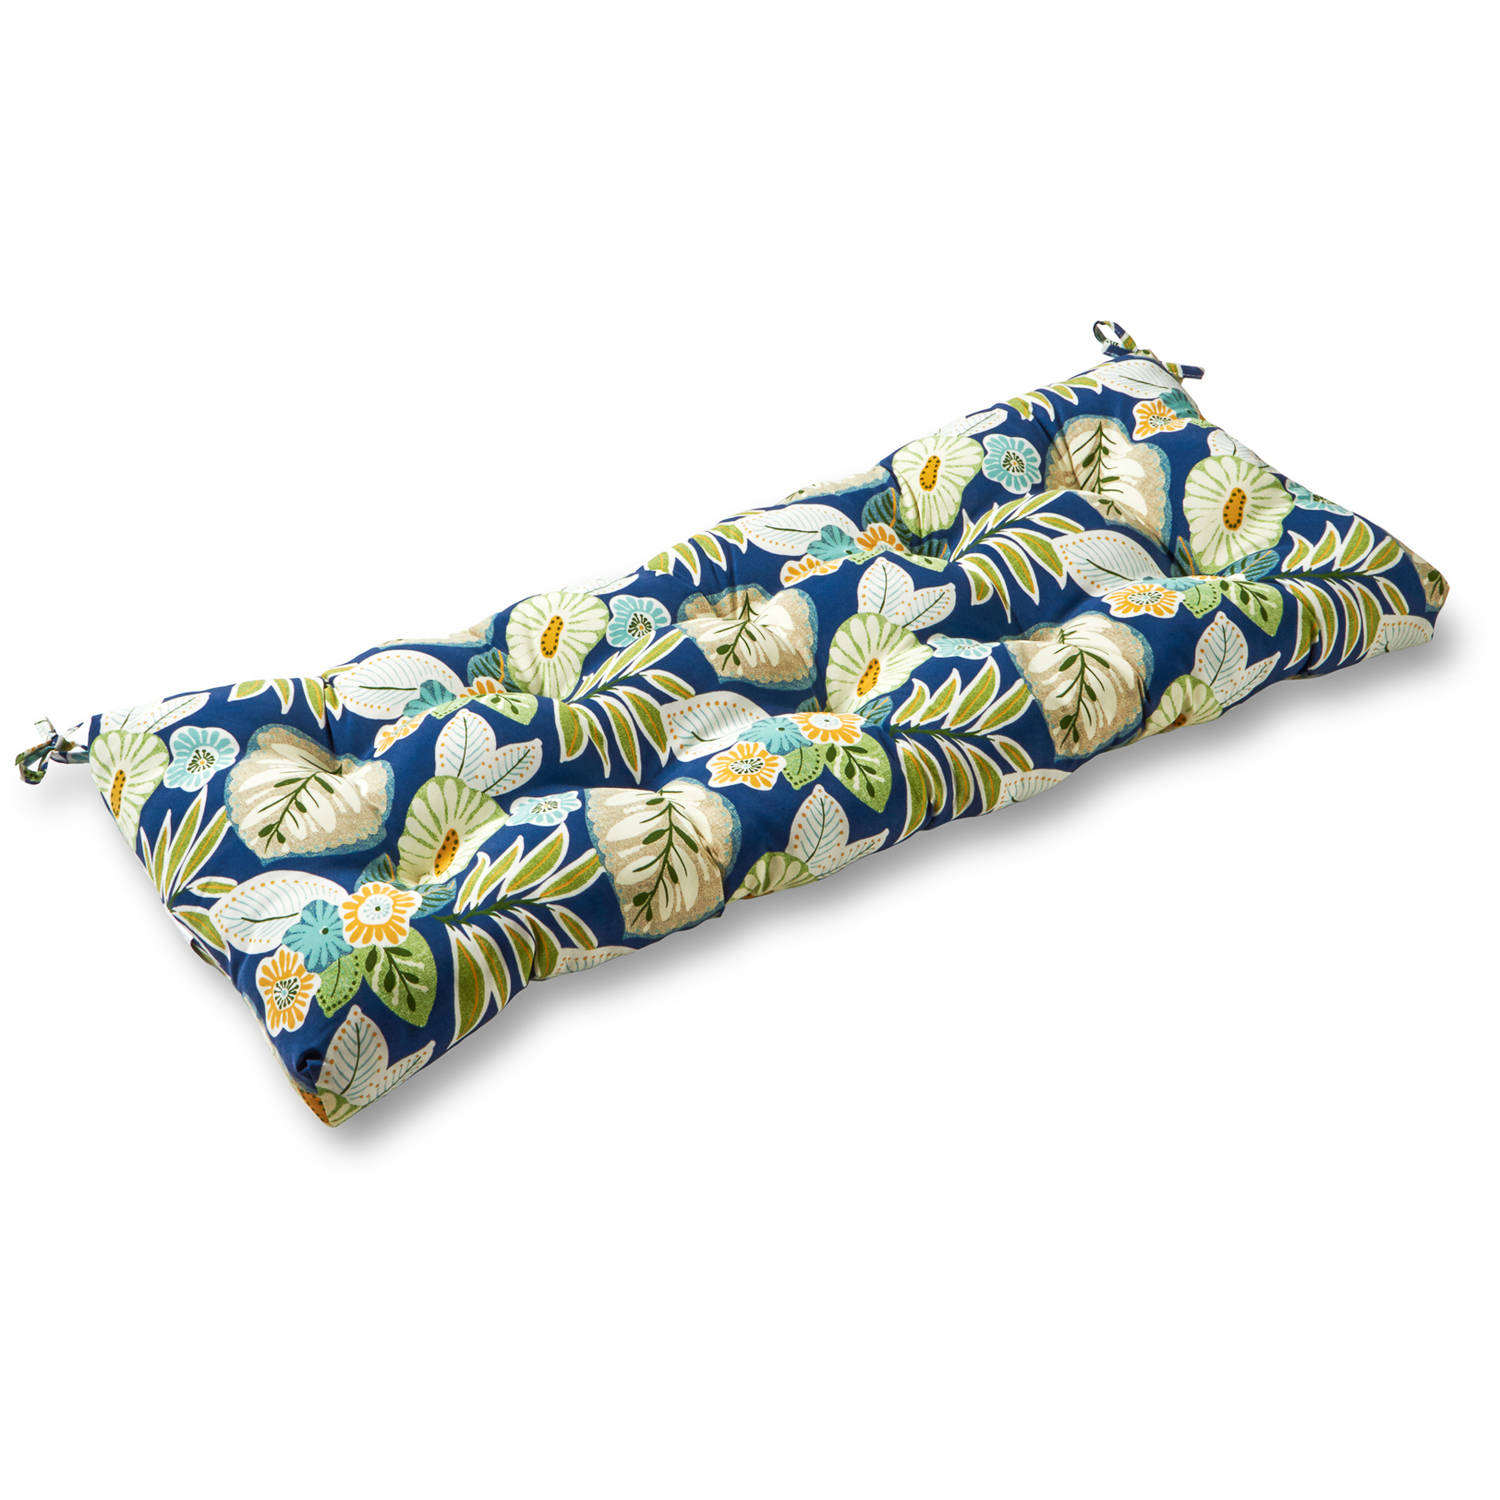 "Greendale Home Fashions 44"" Outdoor Swing/Bench Cushion, Blue Floral"